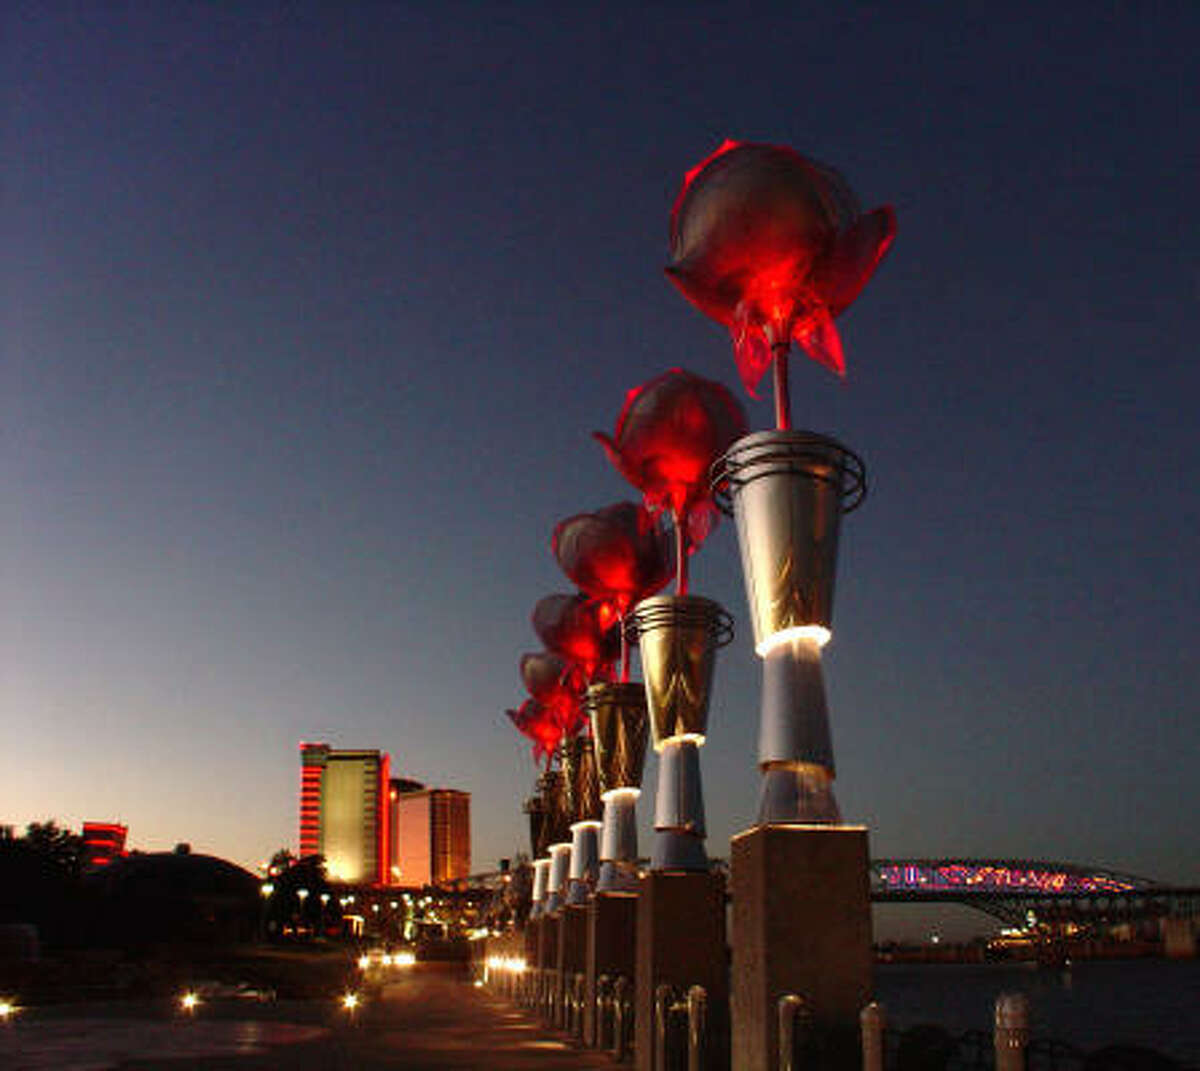 Illuminated steel roses tower 35 feet above RiverView Park along the Red River in Shreveport, La. Bossier City is on the east side of the river.